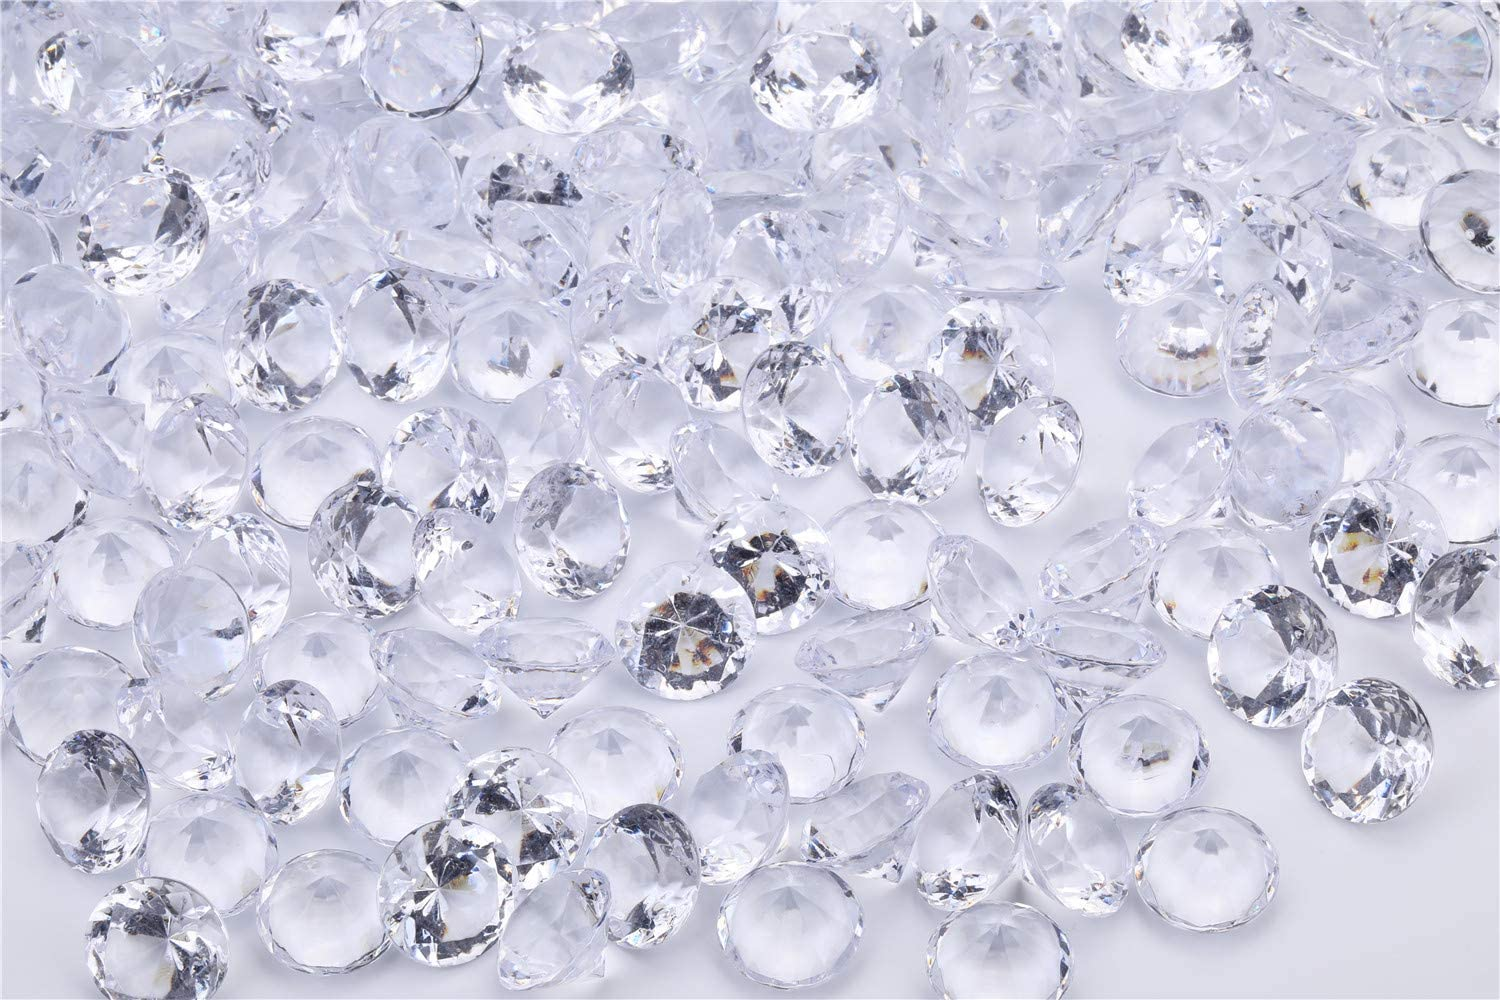 Angzhia Acrylic Diamond Very popular Vase Fillers 1 Pound pcs 285 5 Challenge the lowest price - Inch 4